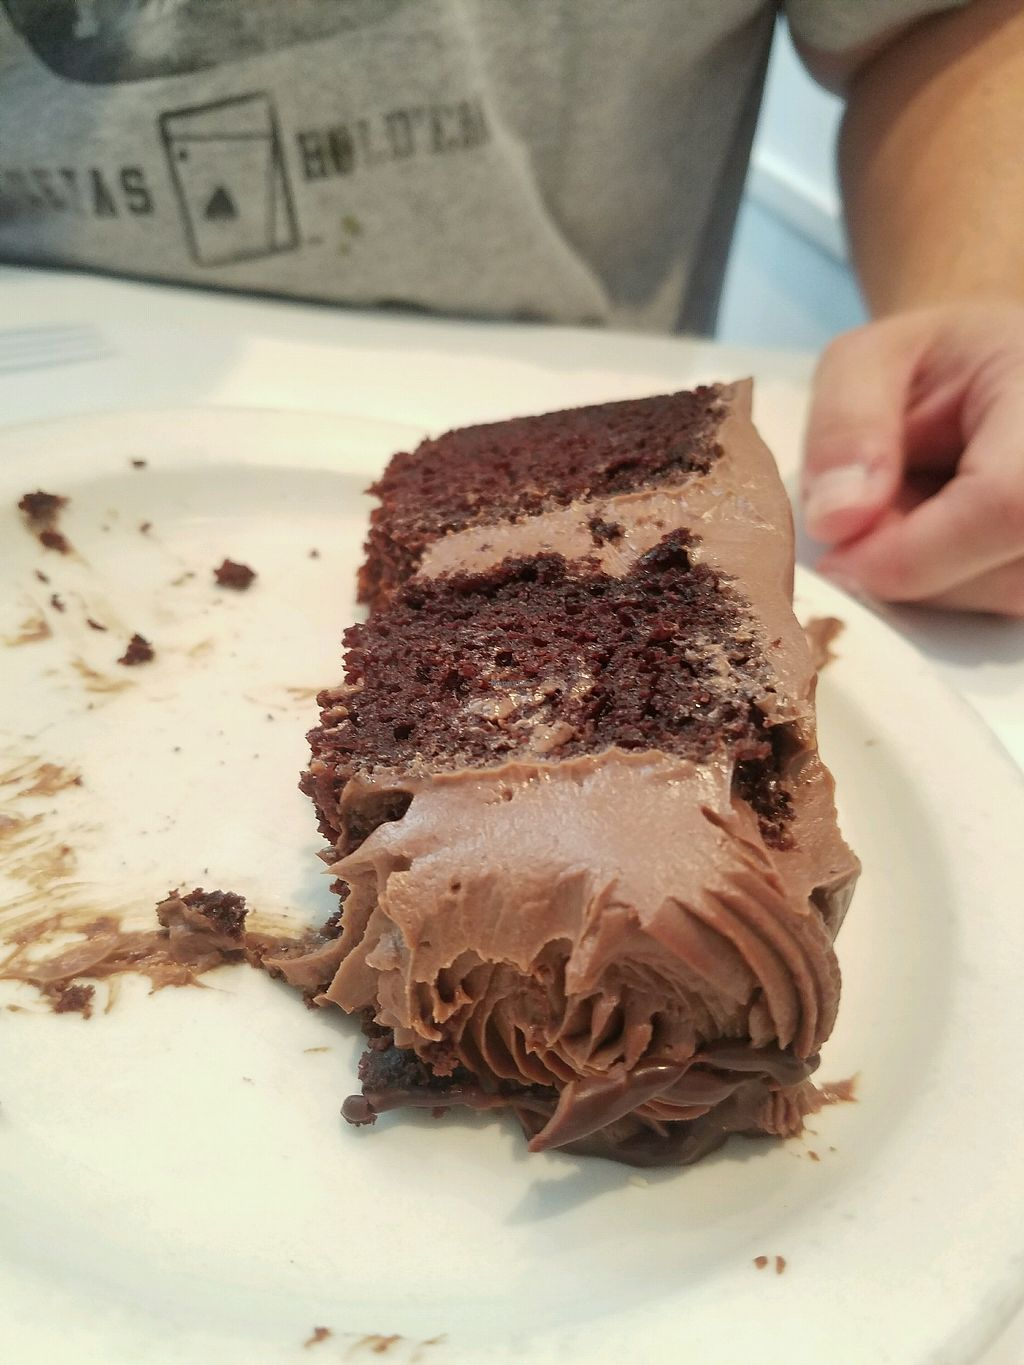 """Photo of Peacefood Cafe - Downtown  by <a href=""""/members/profile/benthere"""">benthere</a> <br/>Mostly eaten chocolate cake. oops!  <br/> October 5, 2017  - <a href='/contact/abuse/image/37453/312086'>Report</a>"""